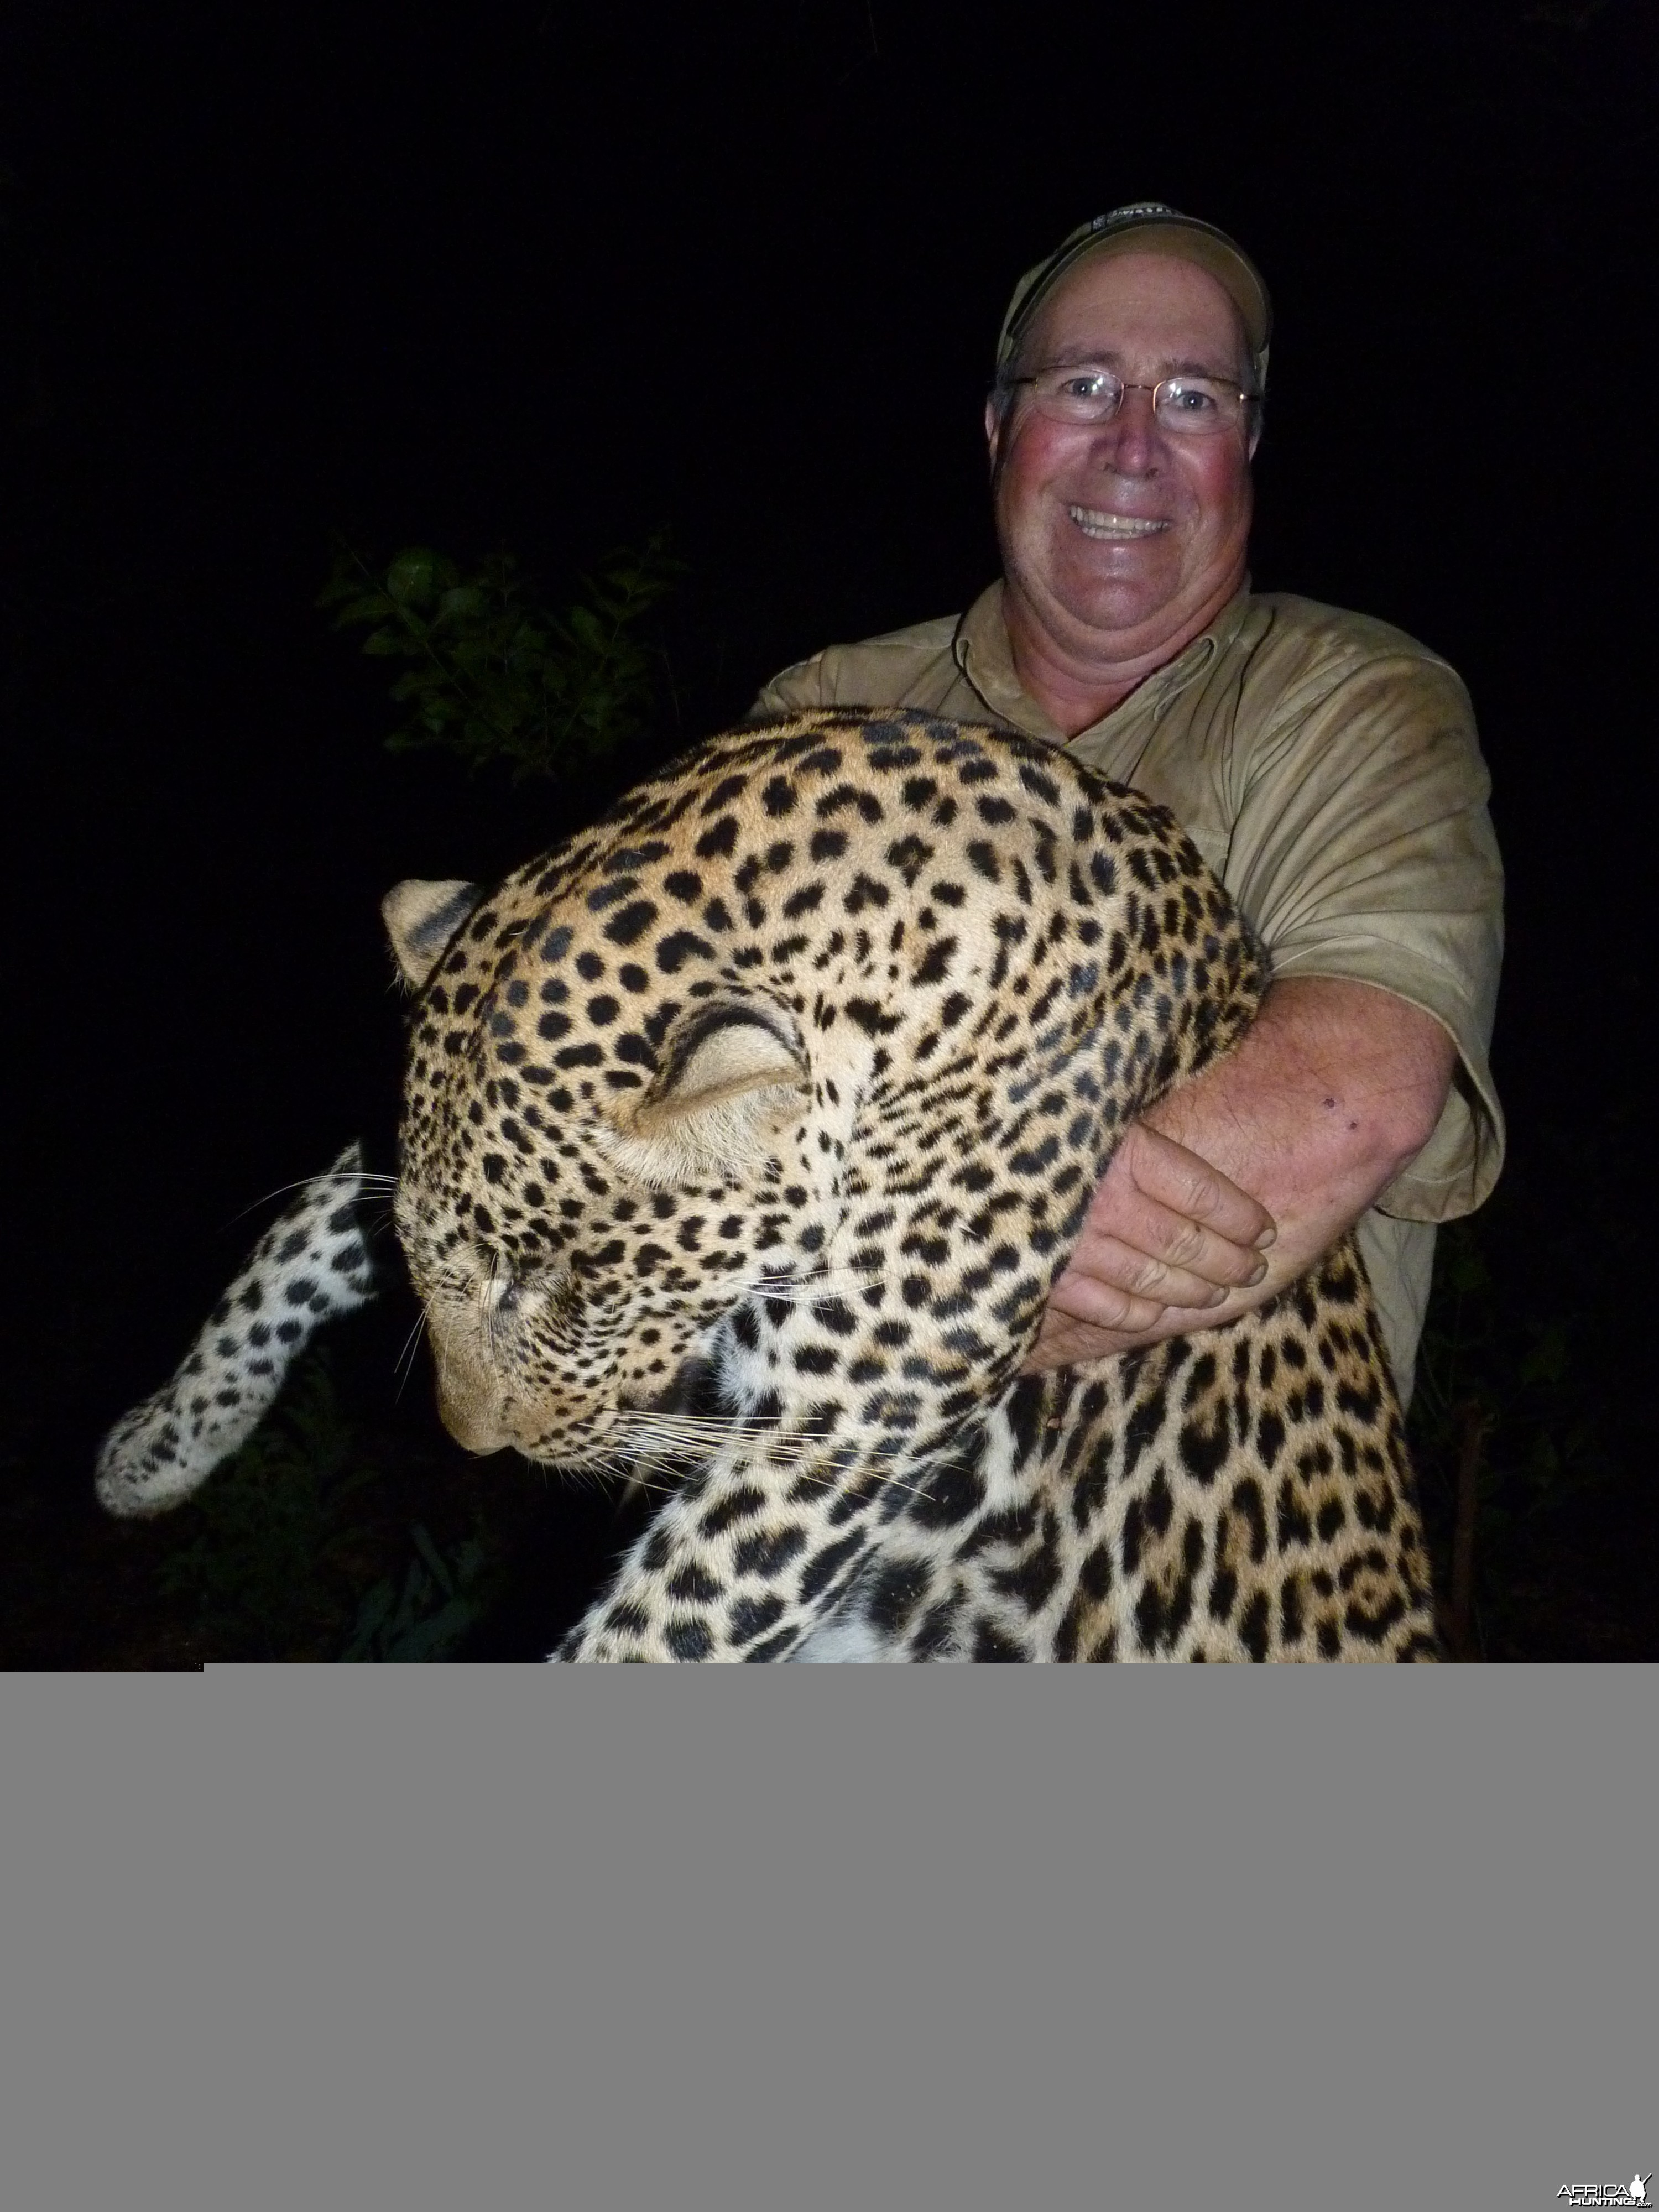 Leopard hunted in CAR